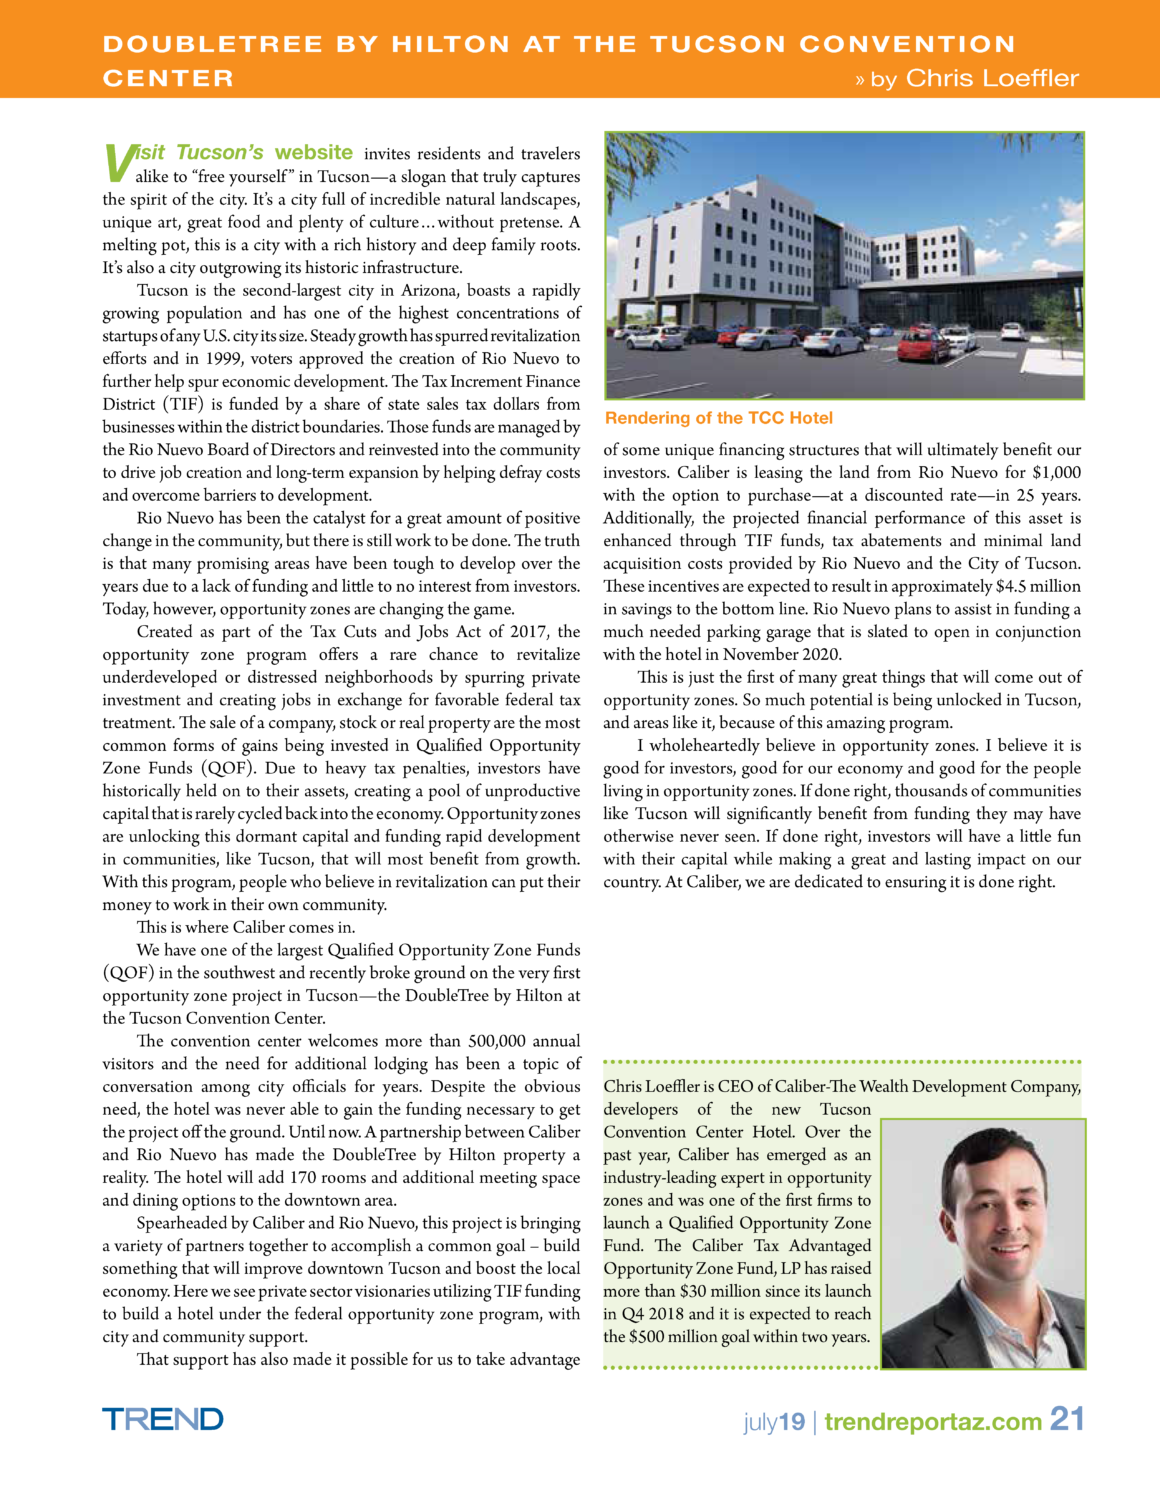 PDF of a Chris Loeffler-bylined article in Trend Report AZ's July 2019 issue.